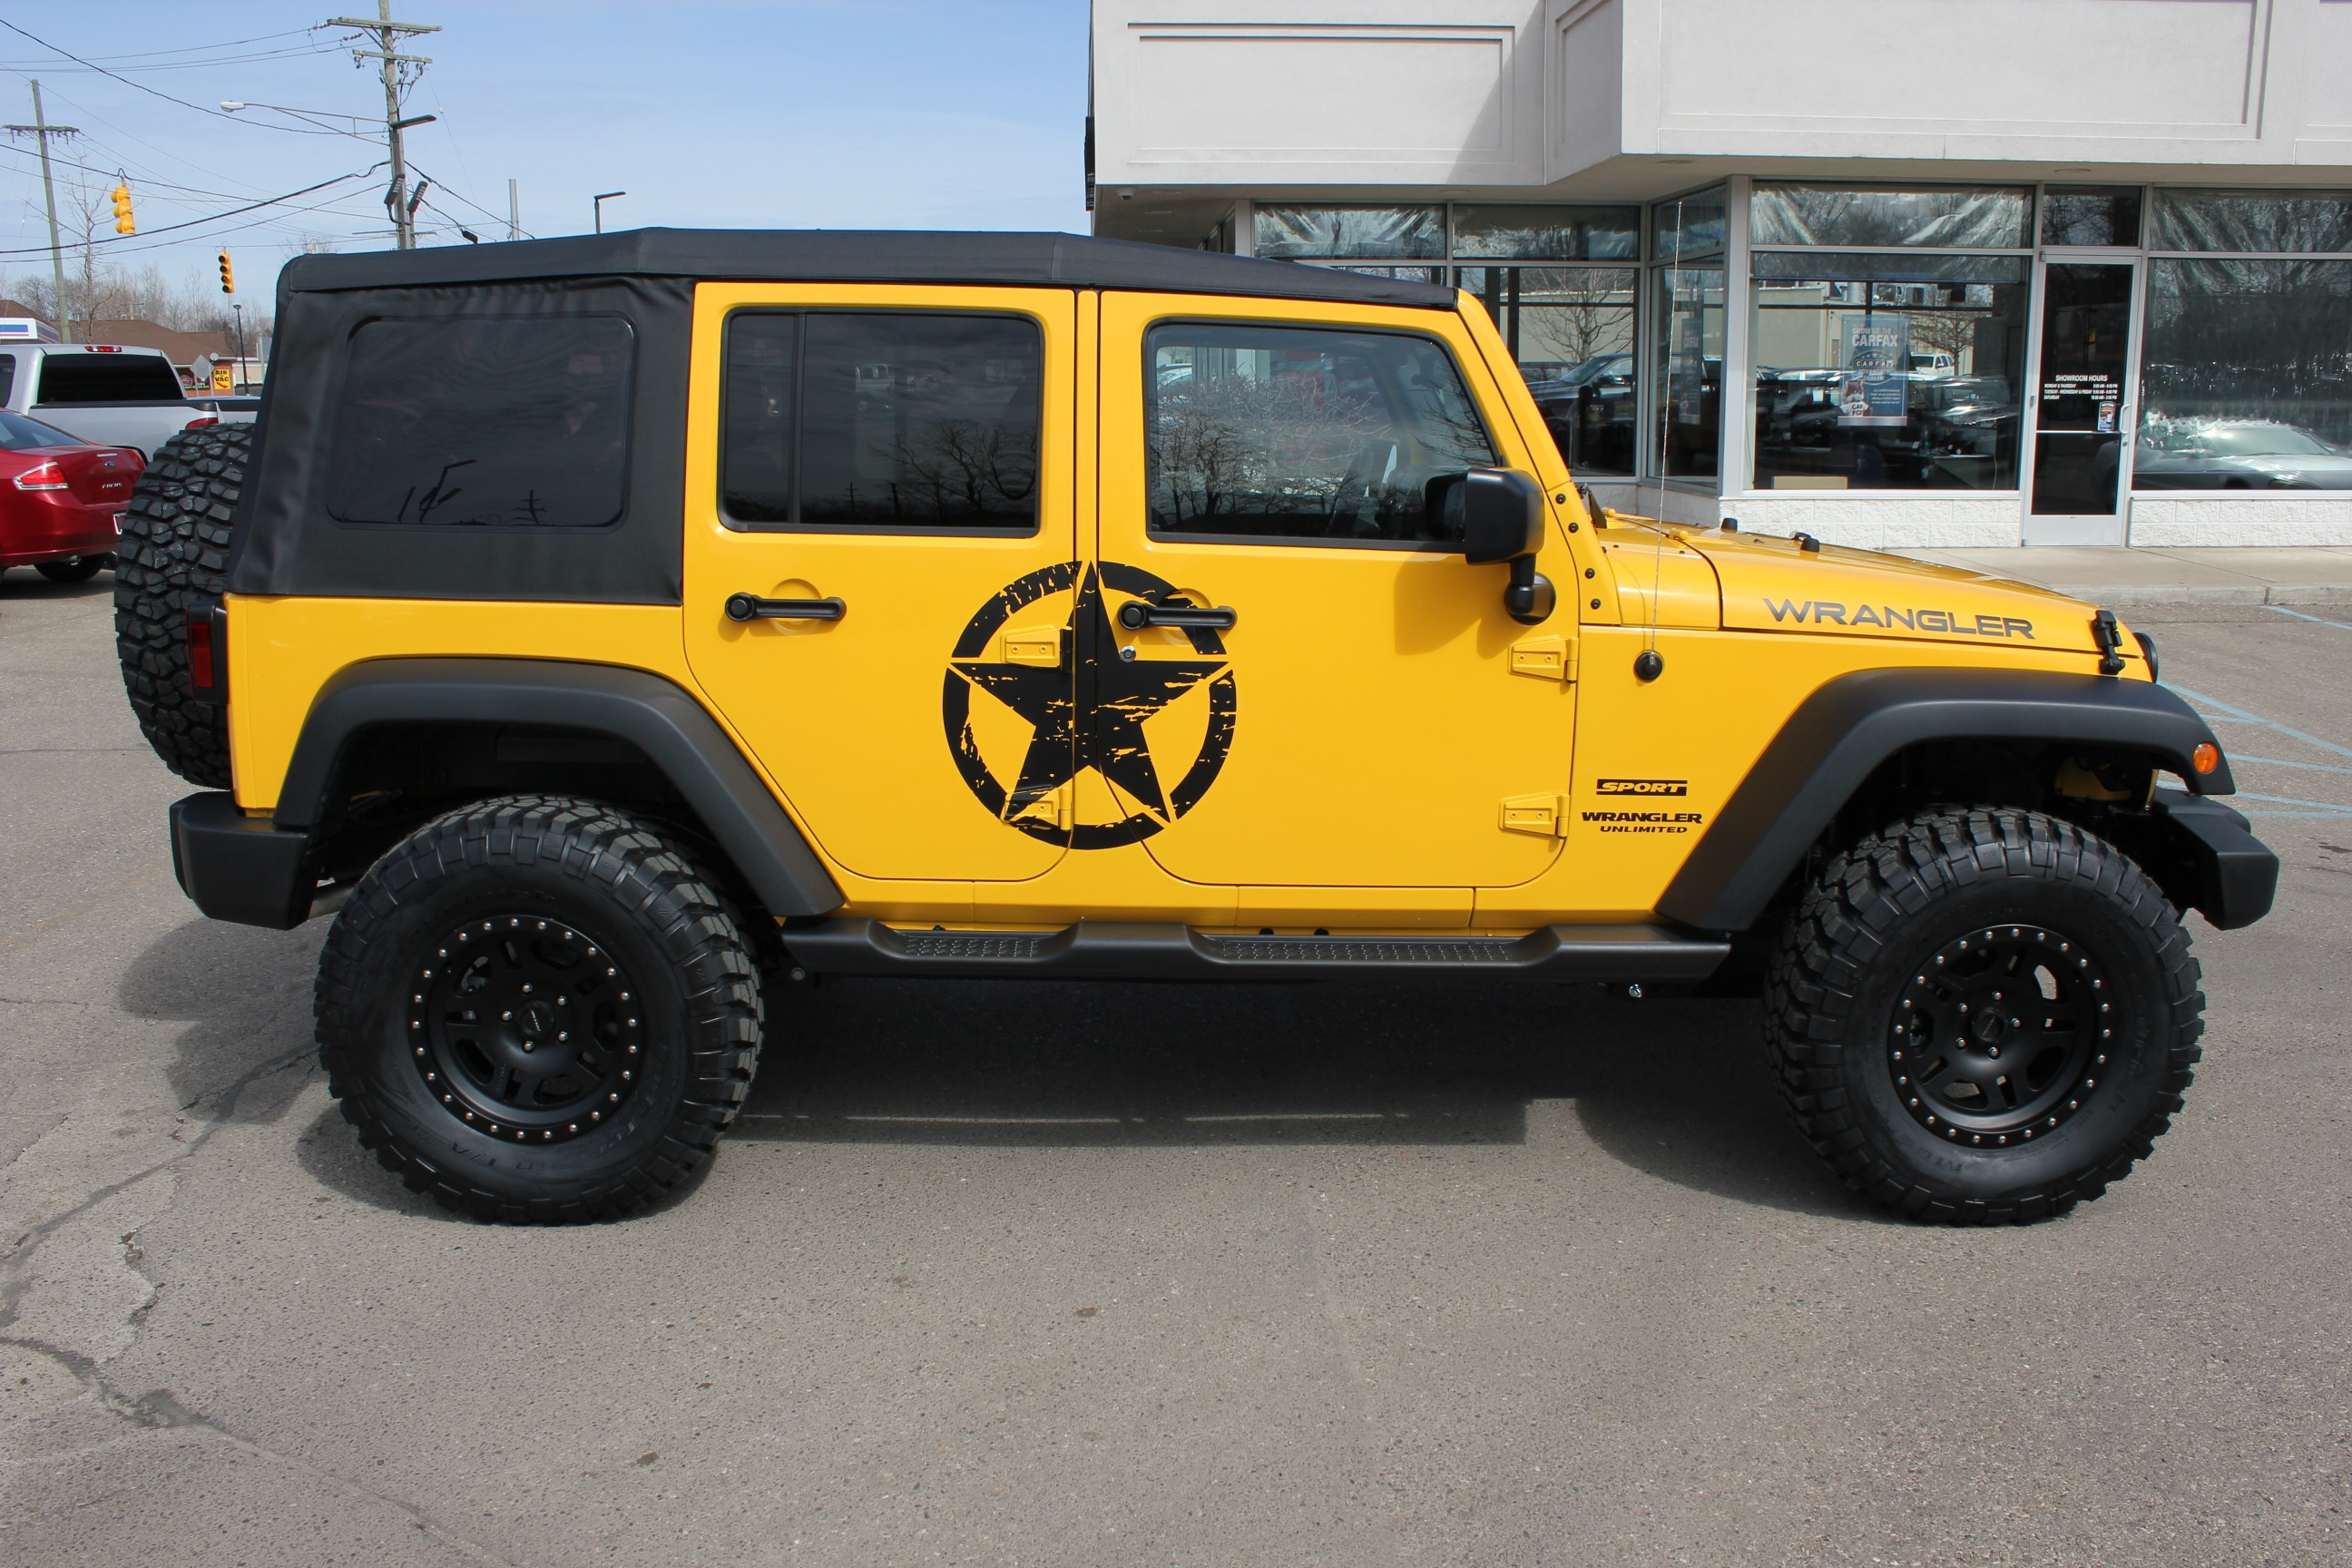 Custom Jeep Wranglers from Shuman and AEV